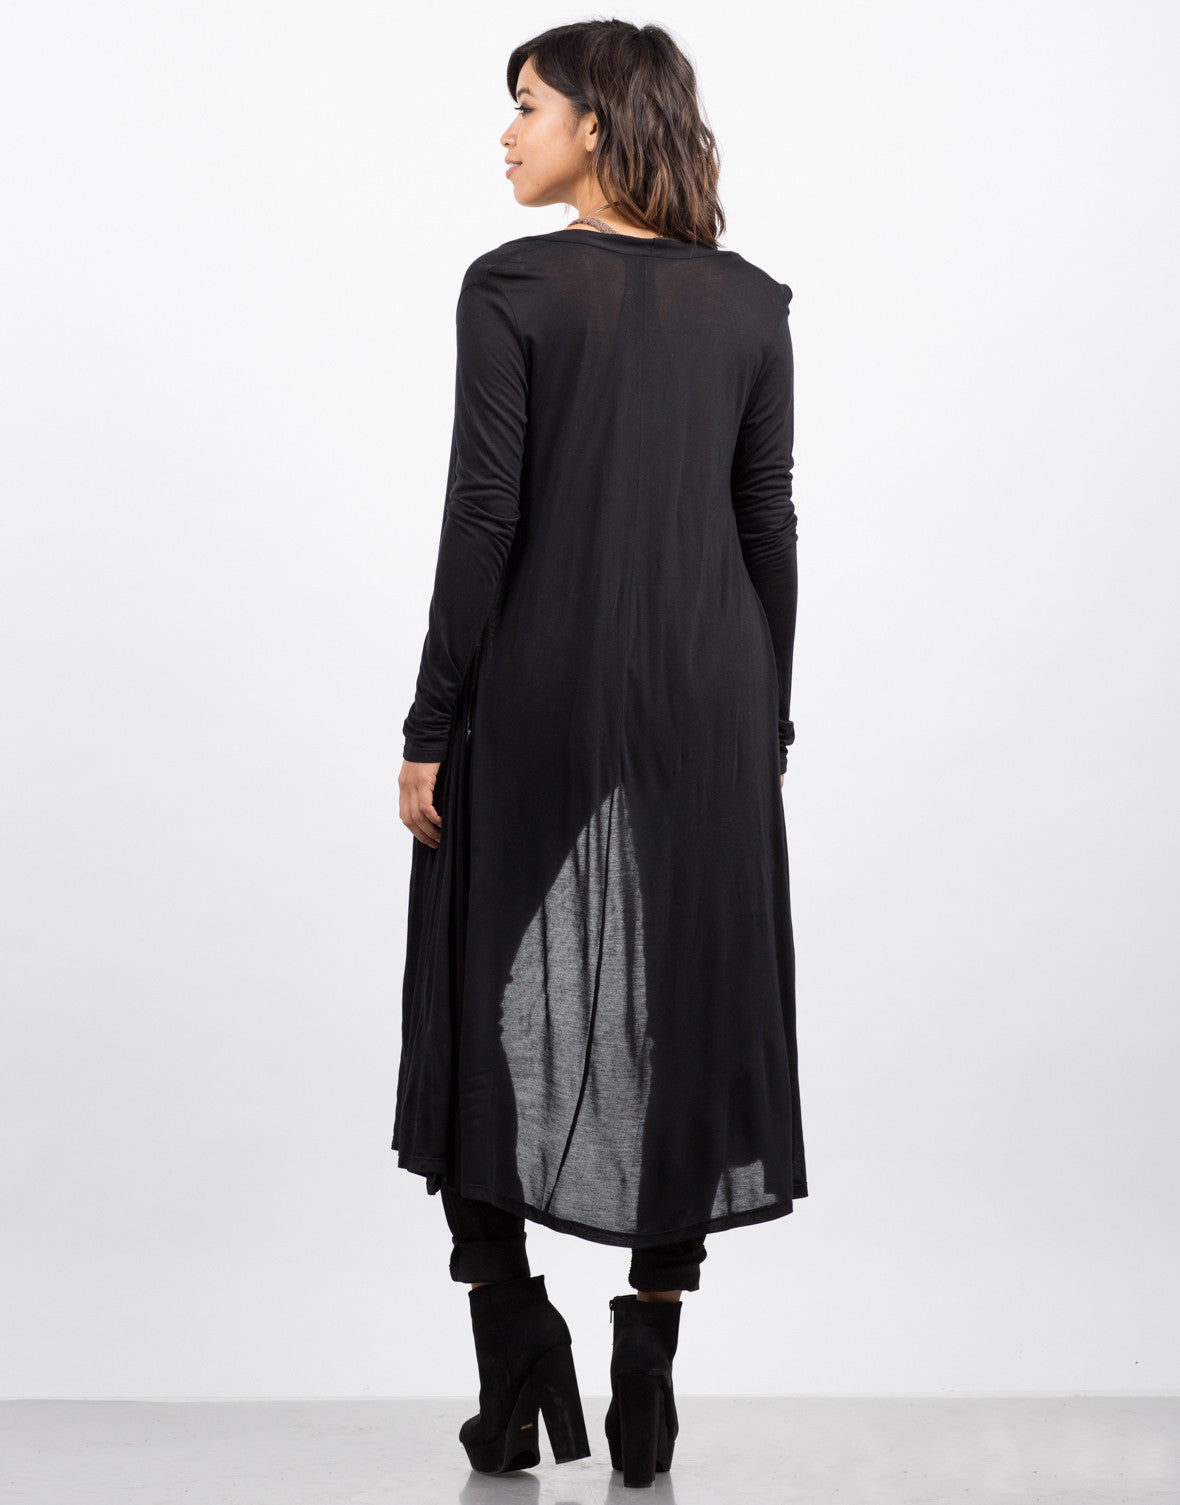 Back View of Lightweight Maxi Cardigan